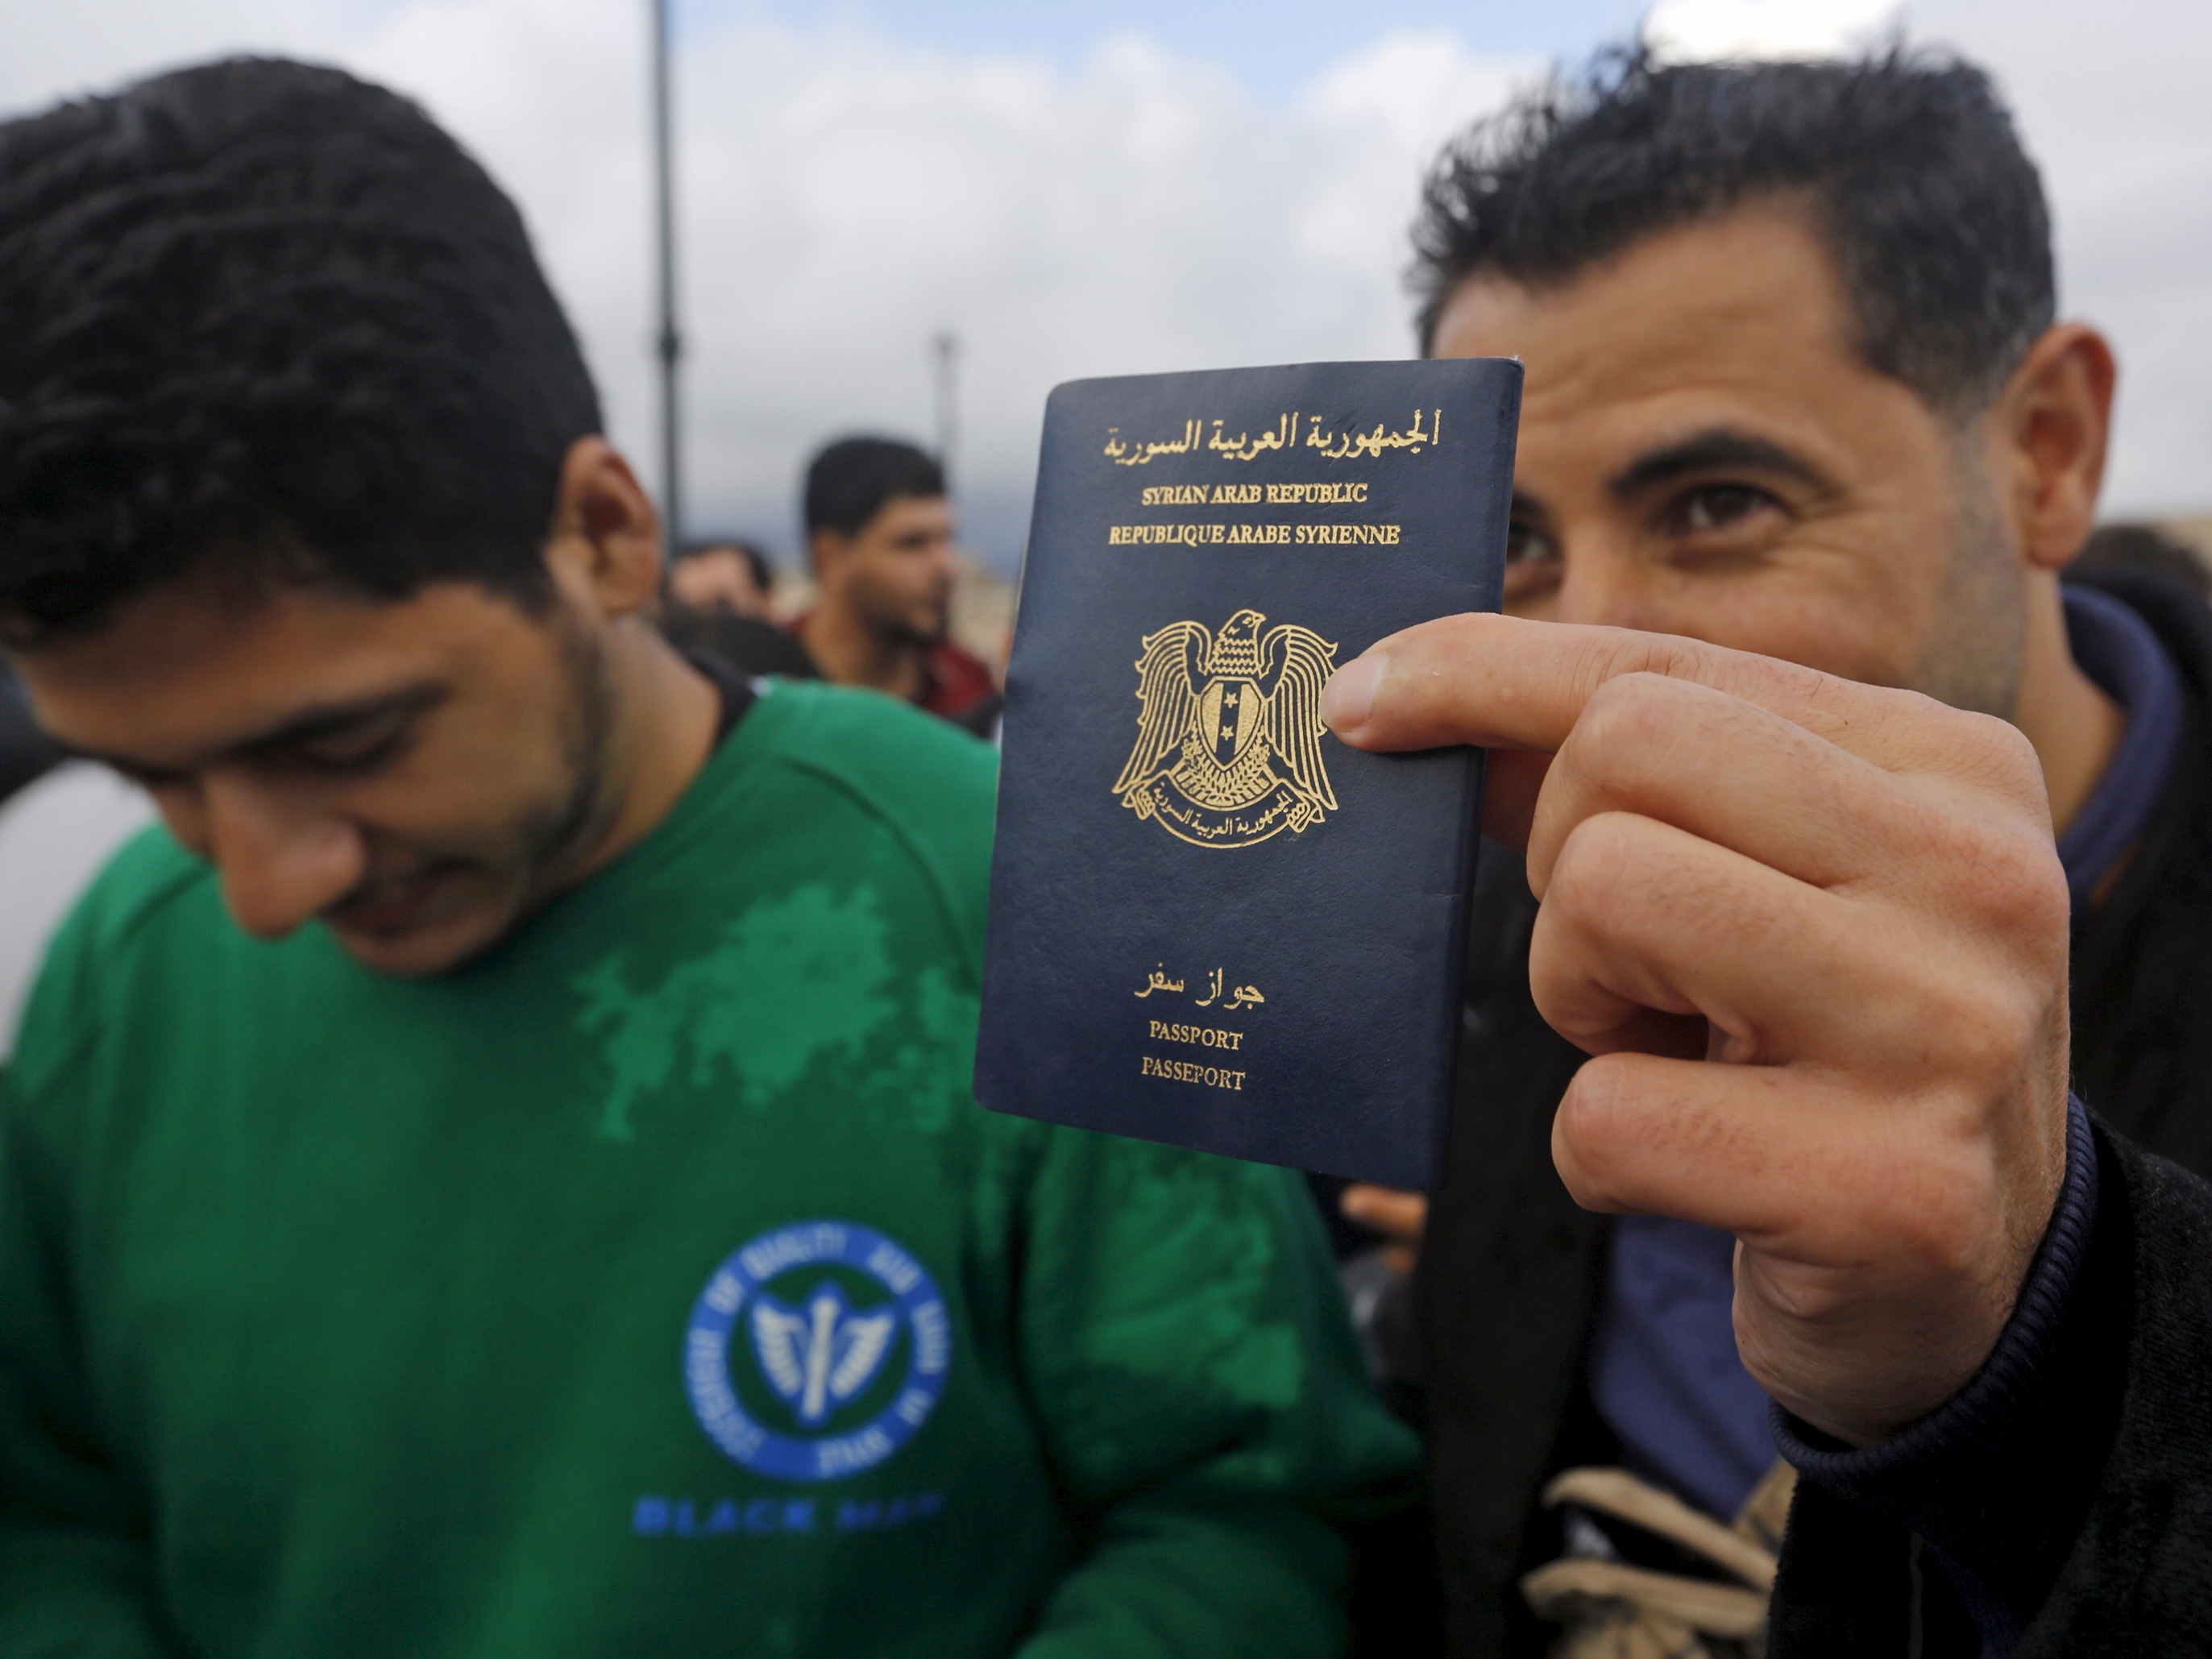 migrants-are-buying-fake-syrian-passports-and-it-could-disrupt-an-already-fragile-political-climate